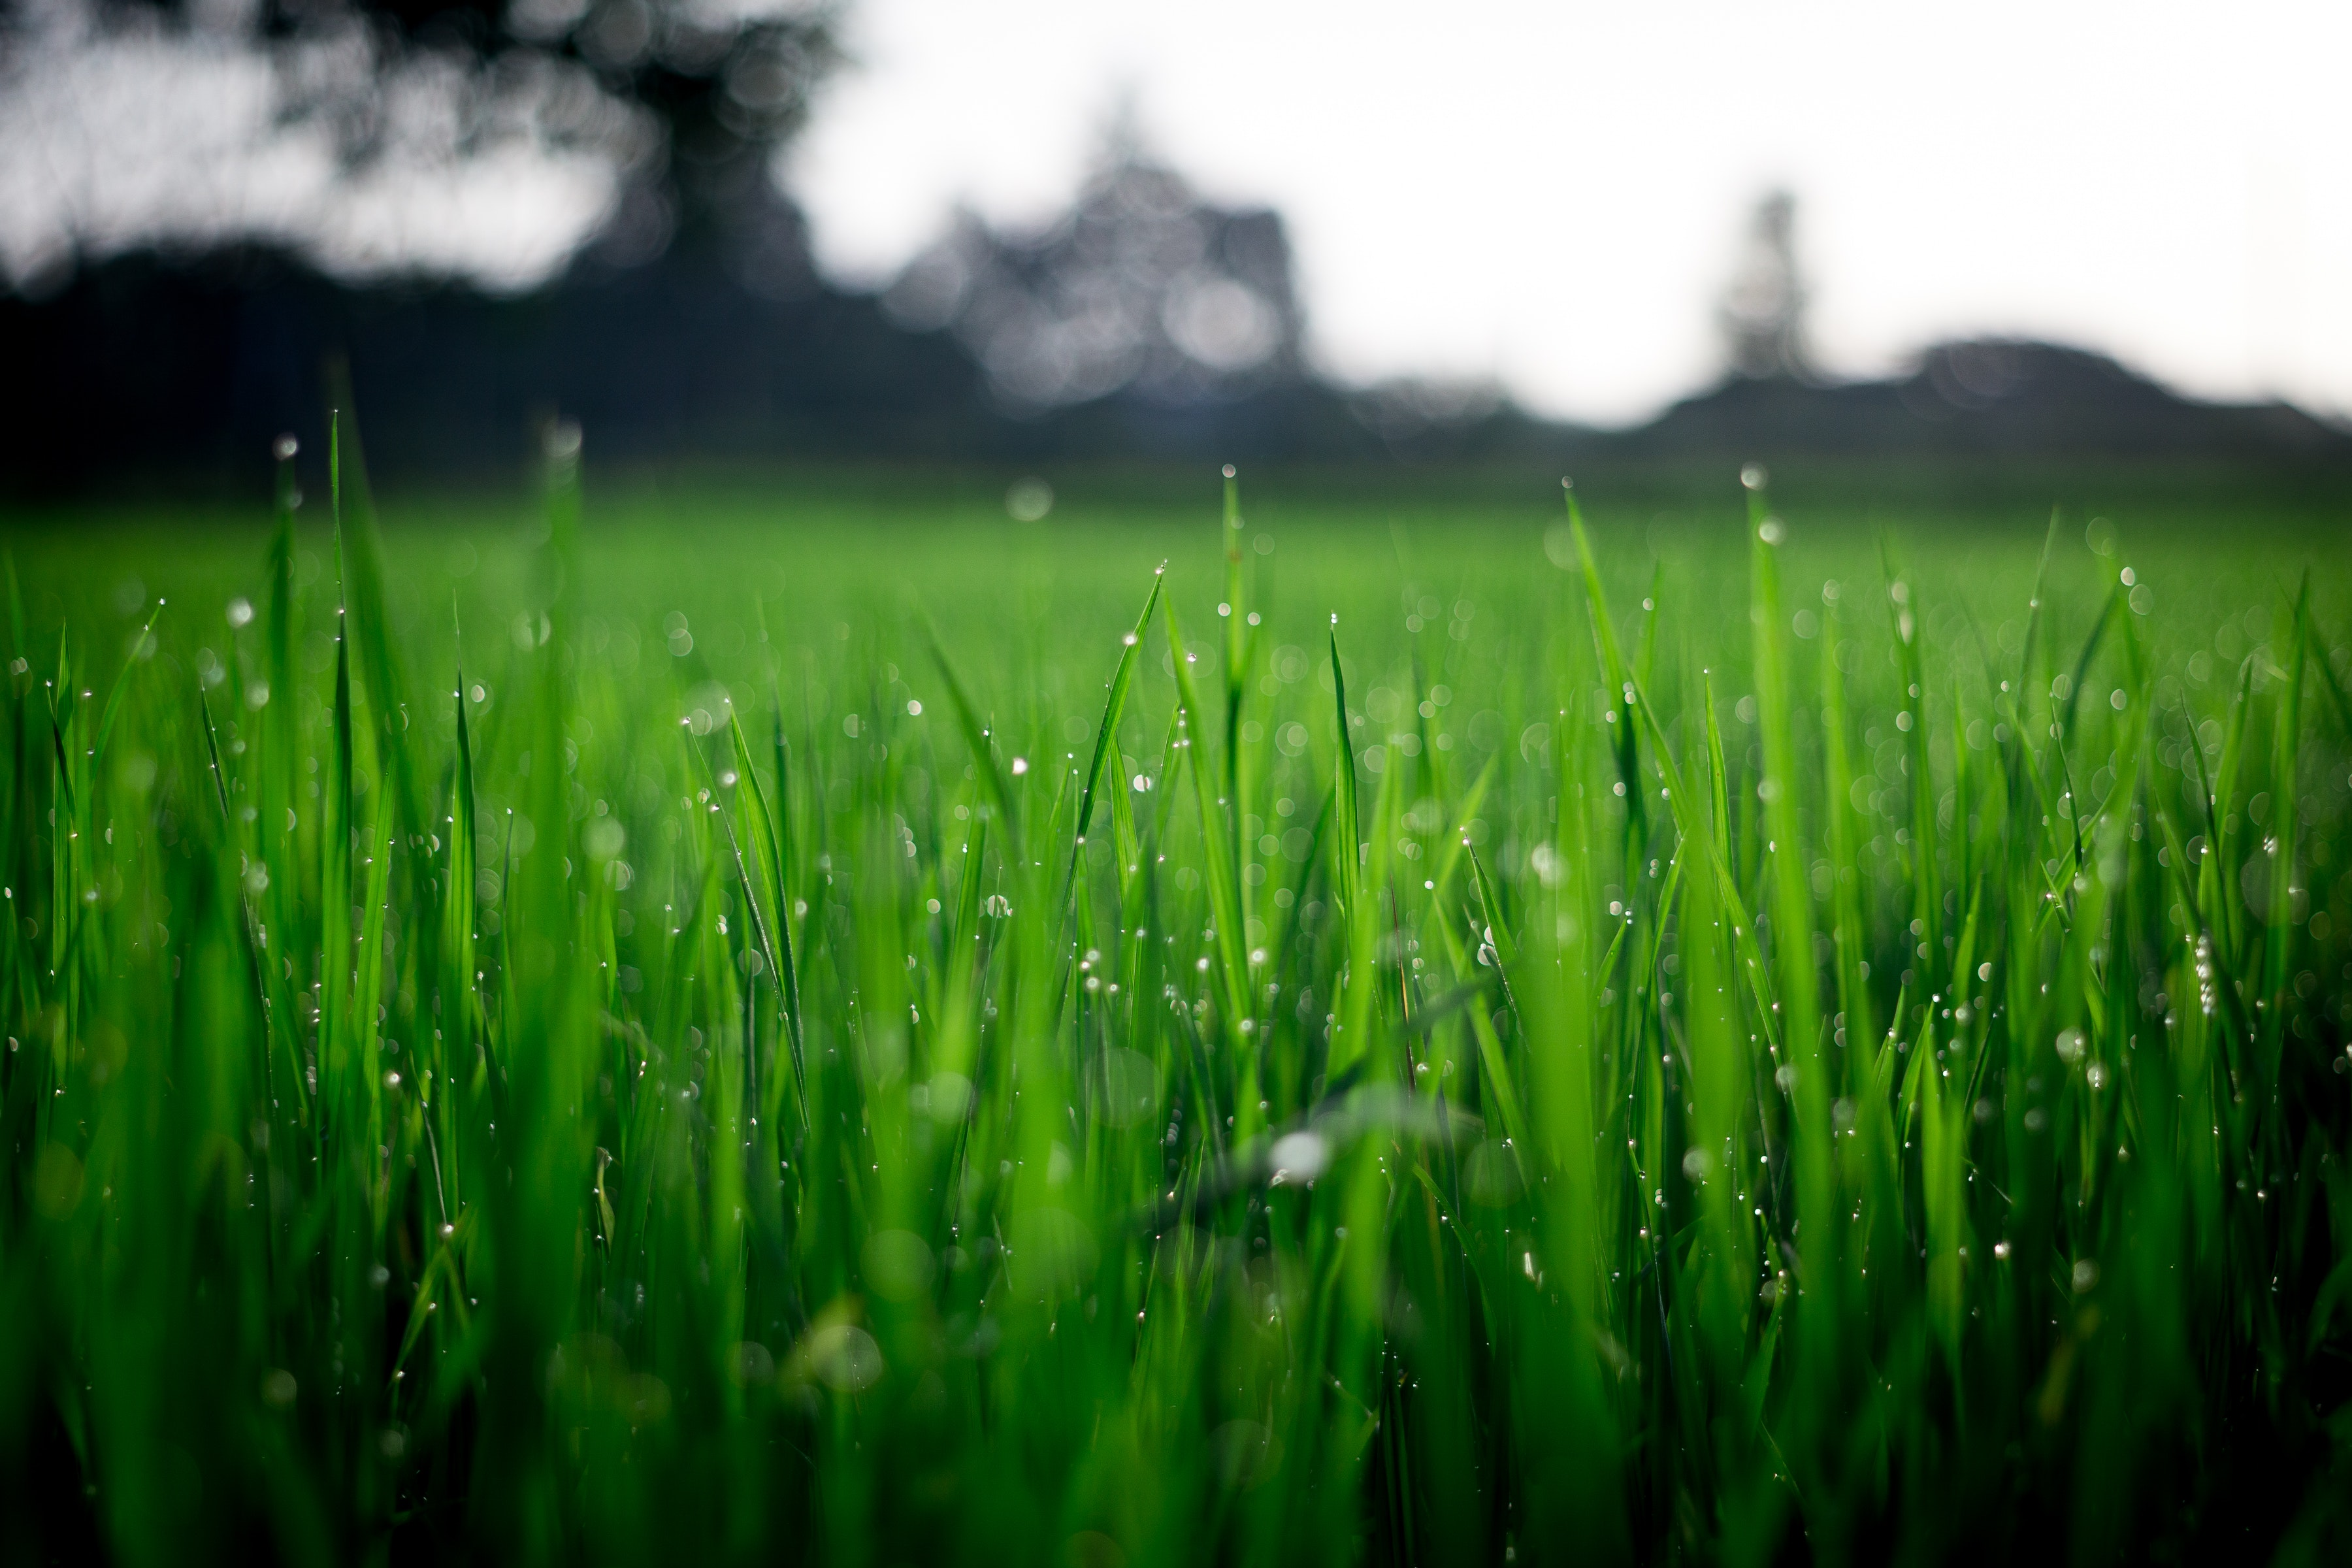 Image of dew on grass